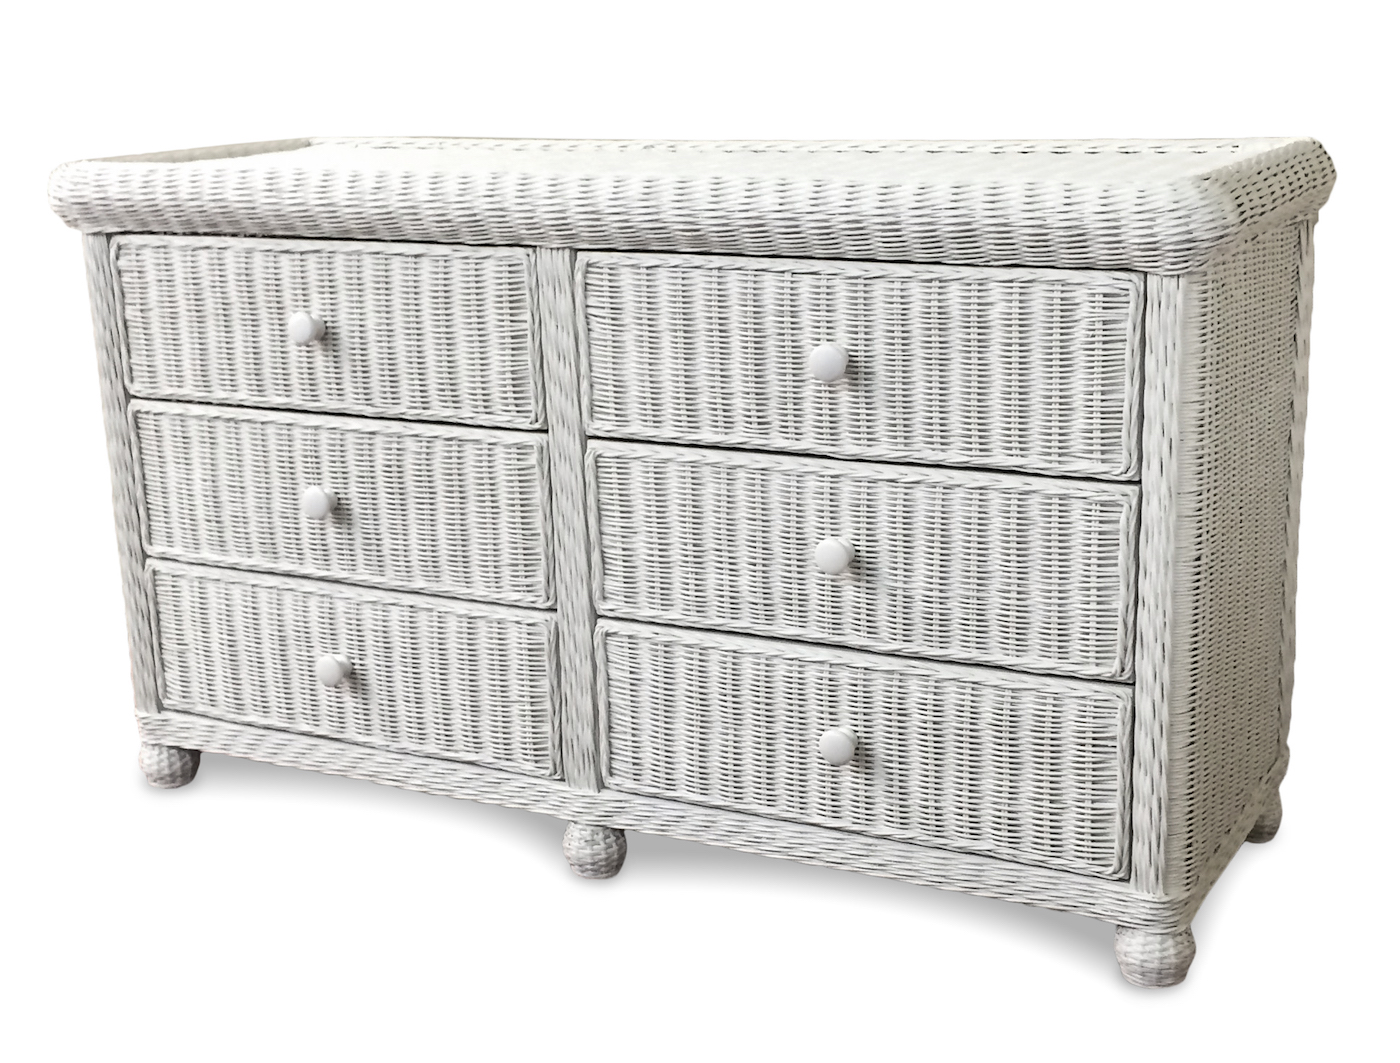 Wicker 6 Drawer Dresser Elana Wicker Paradise